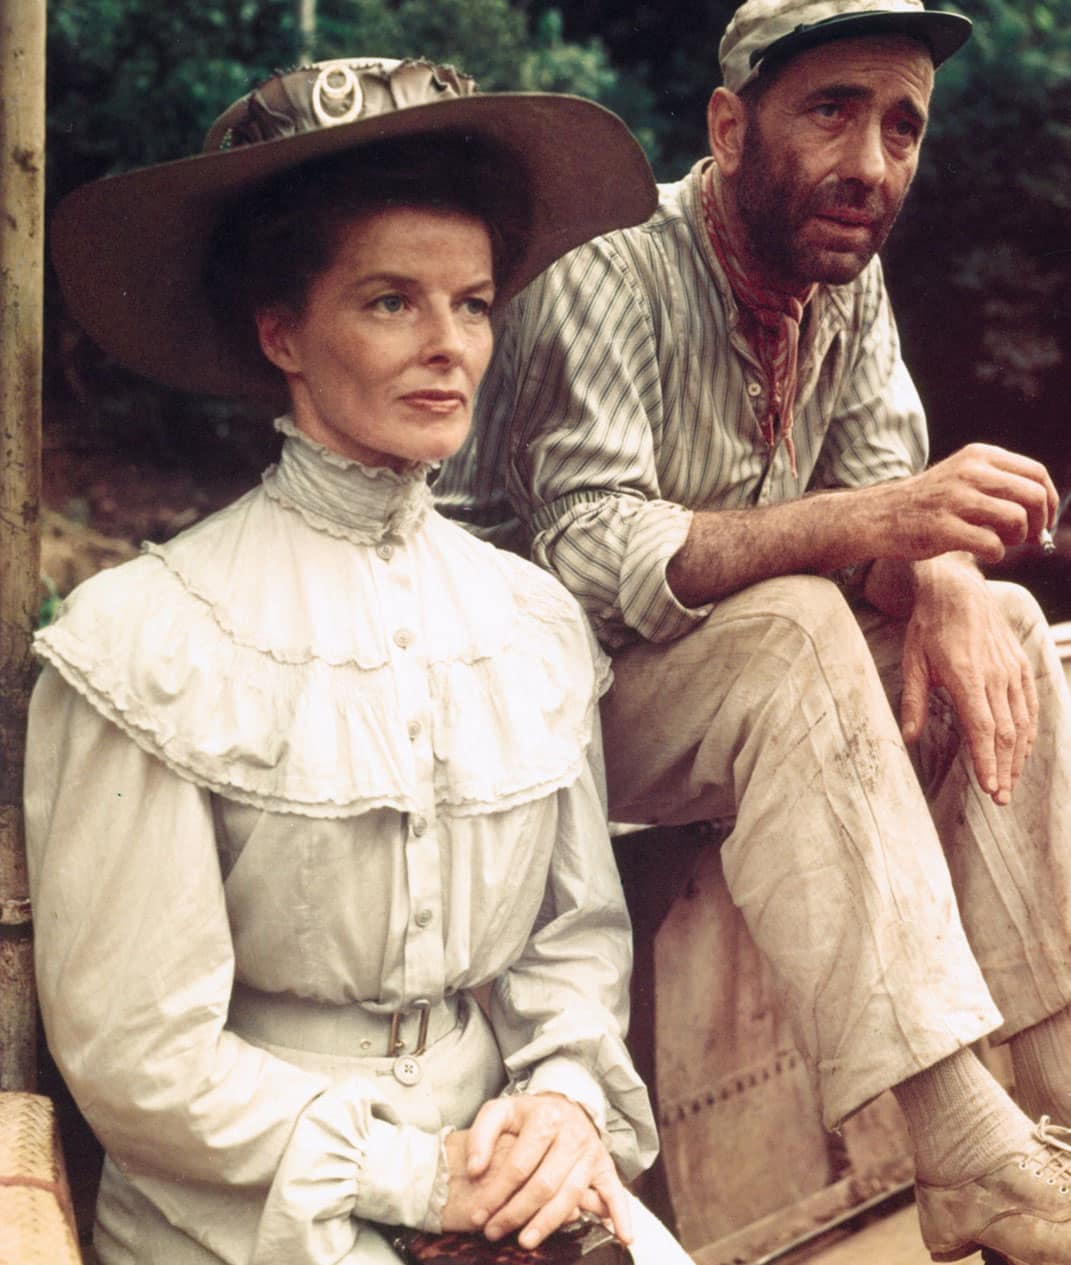 Katharine Hepburn Humphrey Bogart The African Queen 20 Things You Didn't Know About Indiana Jones and the Last Crusade